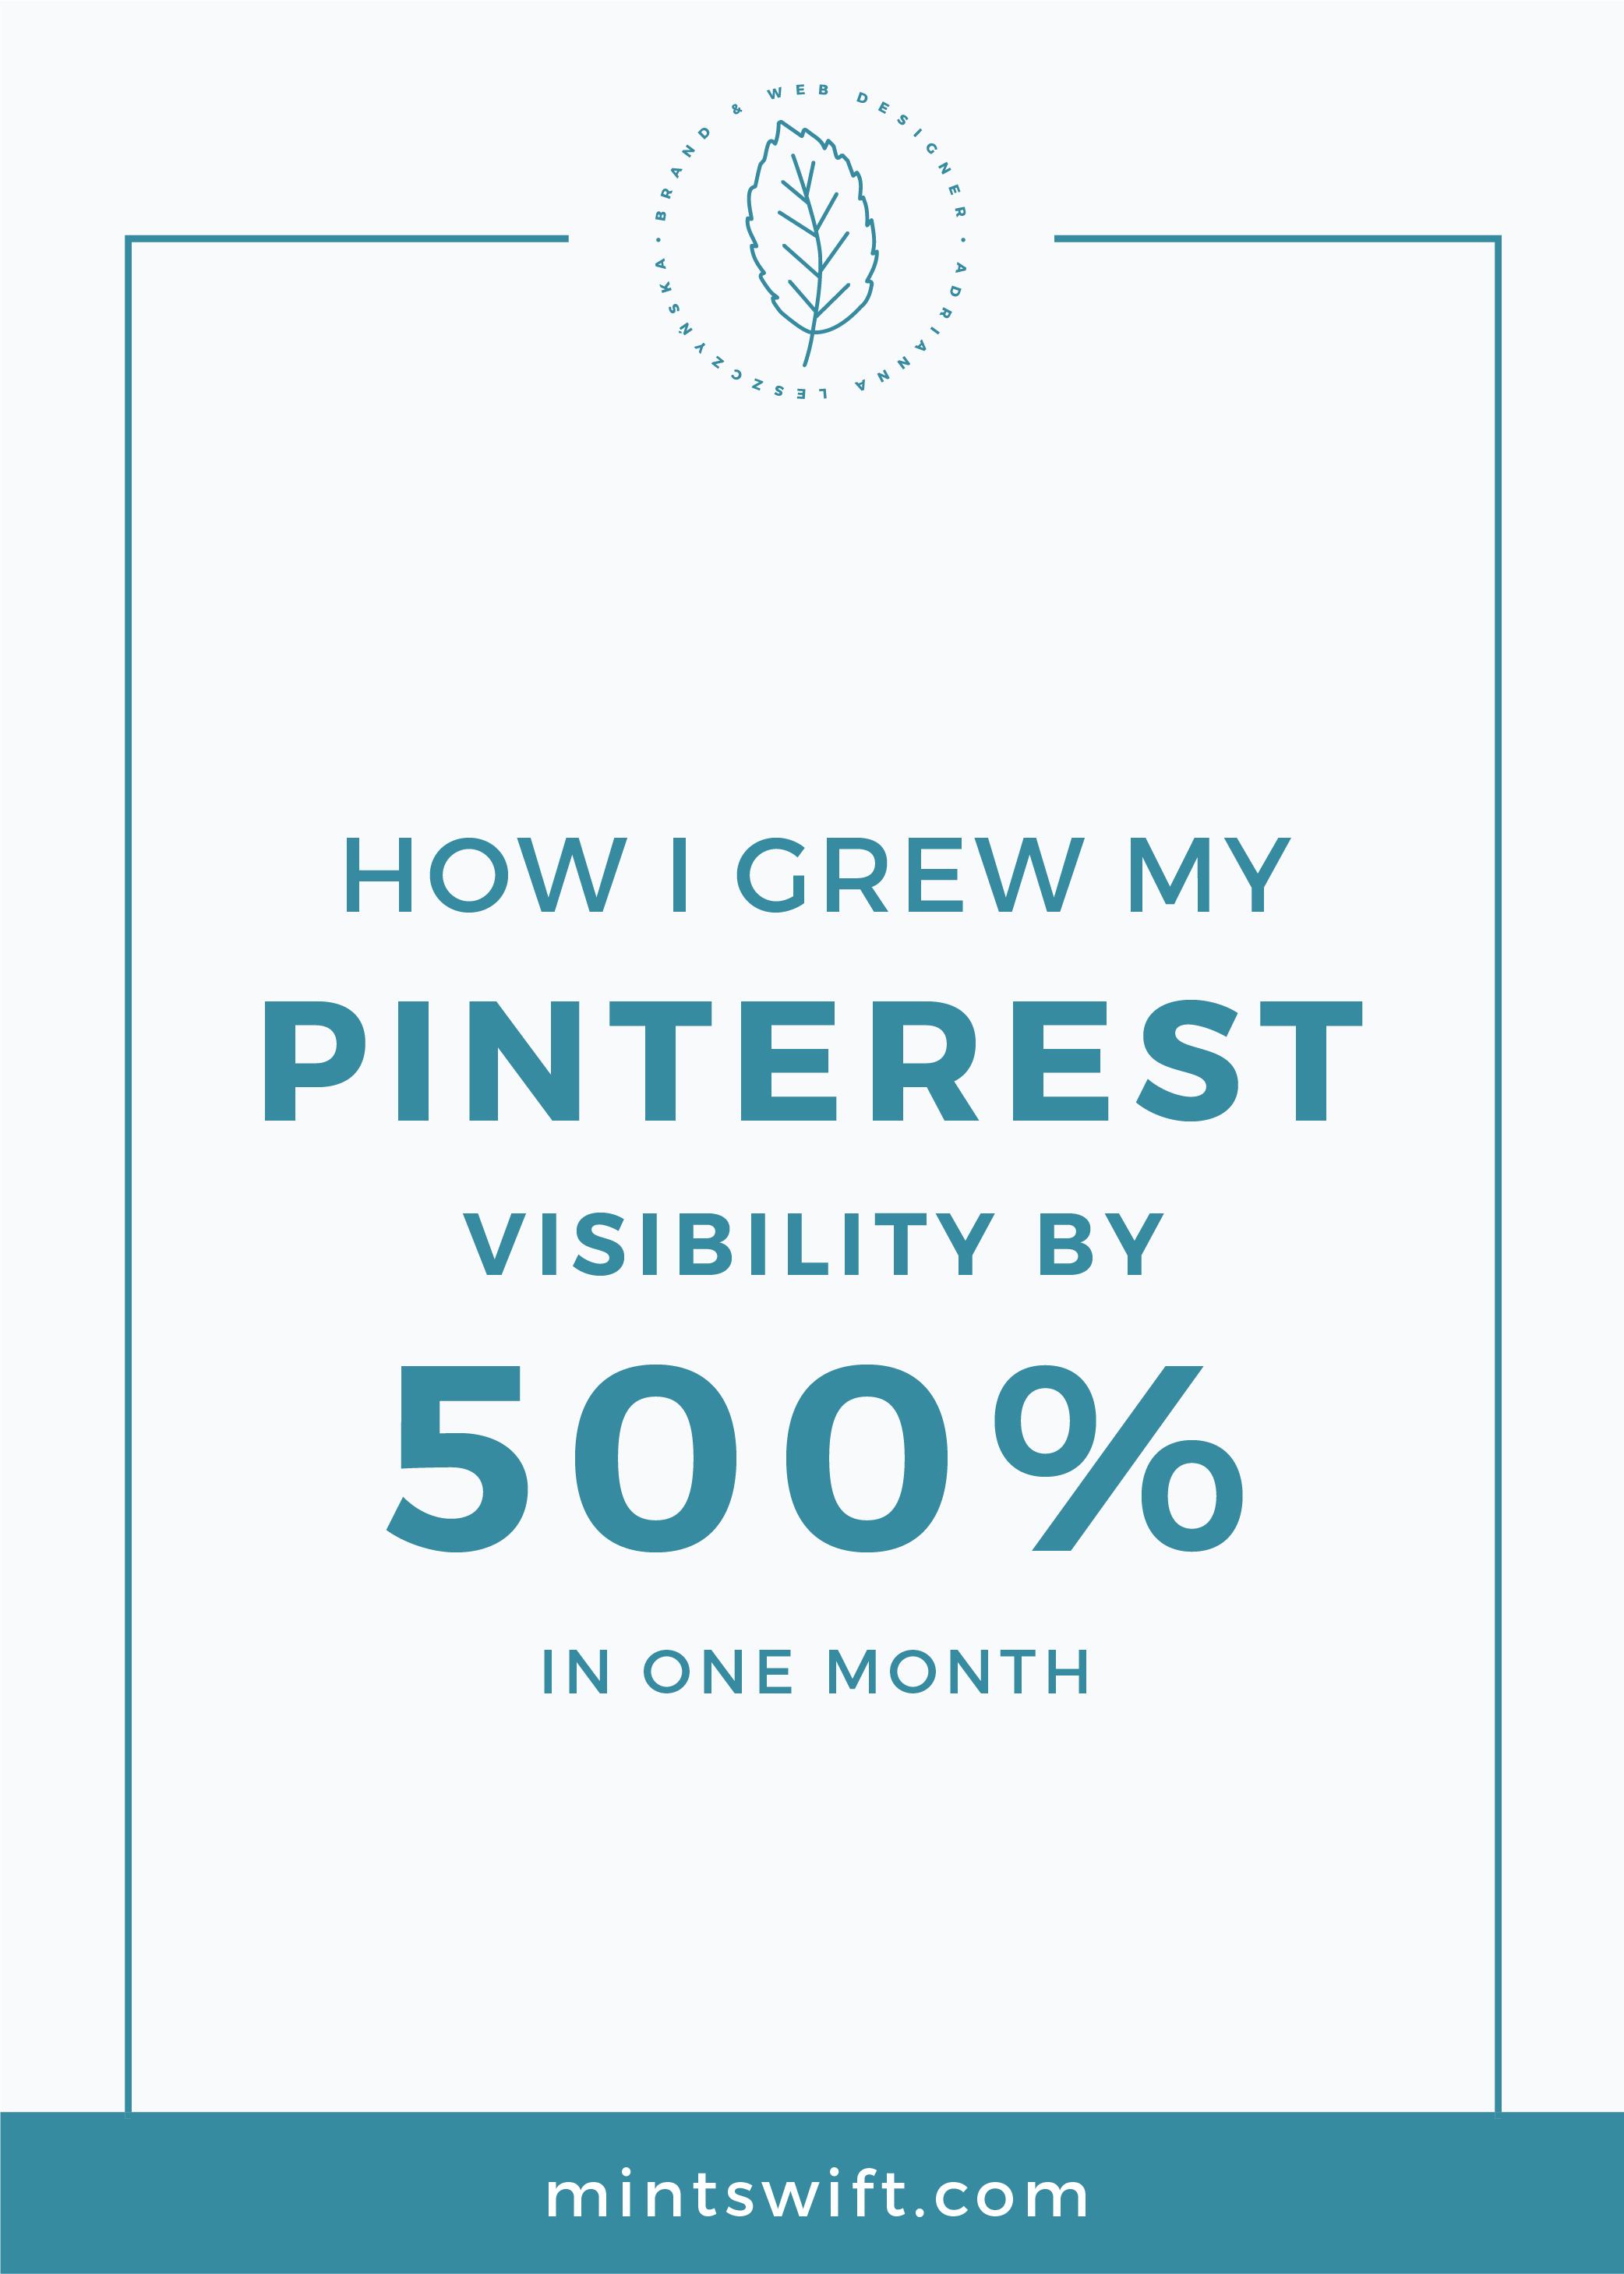 How I Grew My Pinterest Visibility by 500% in One Month MintSwift